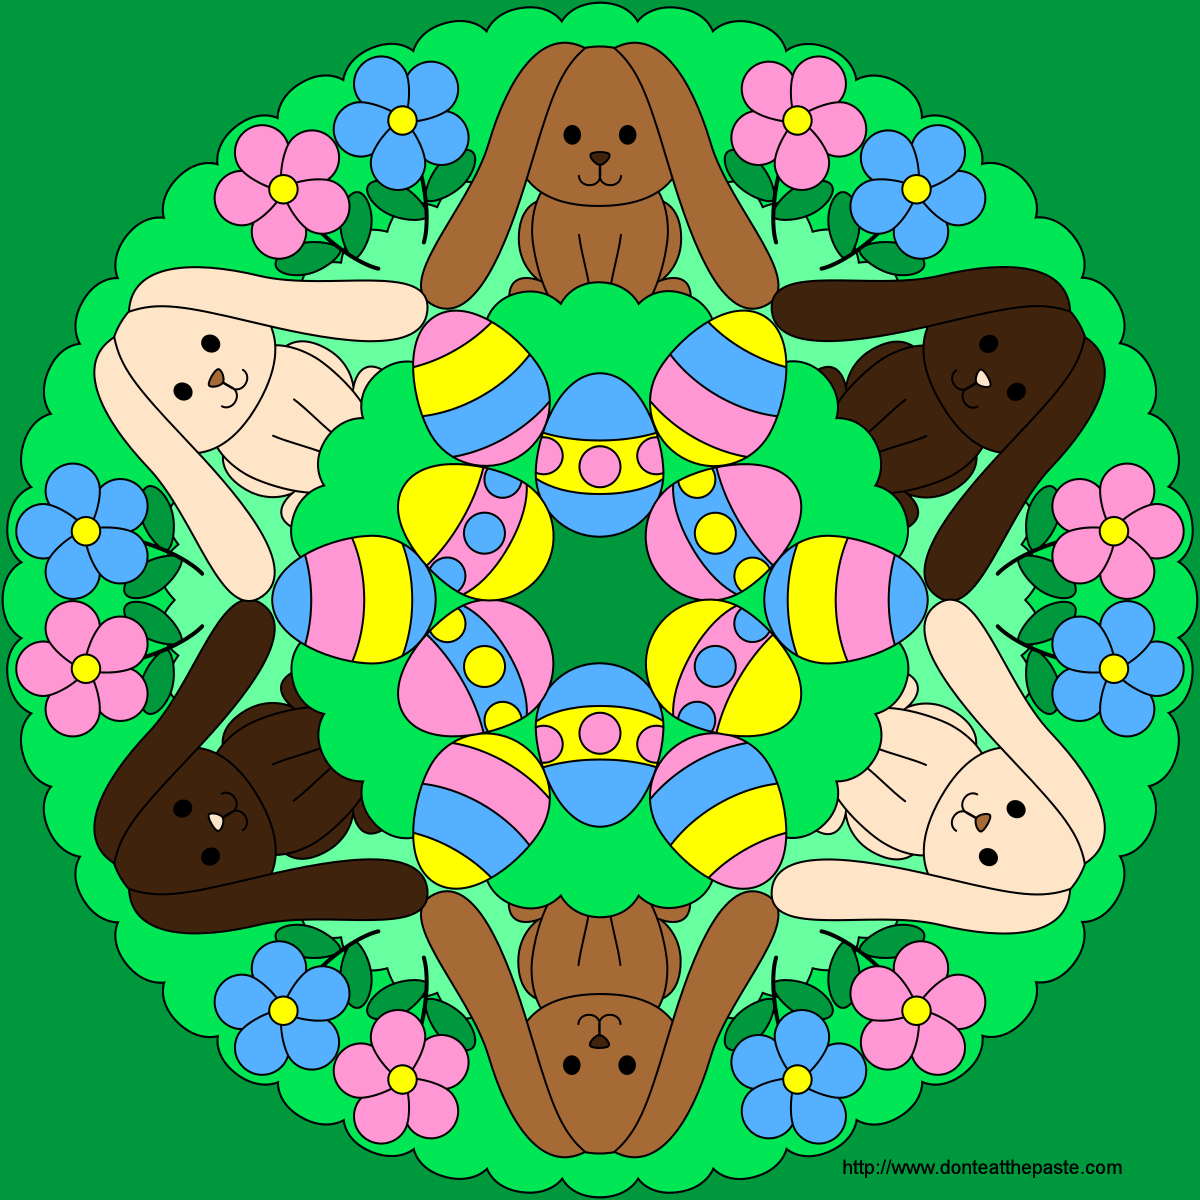 Another Swirly Mandala to print and color | Egg crafts, Color crafts ...